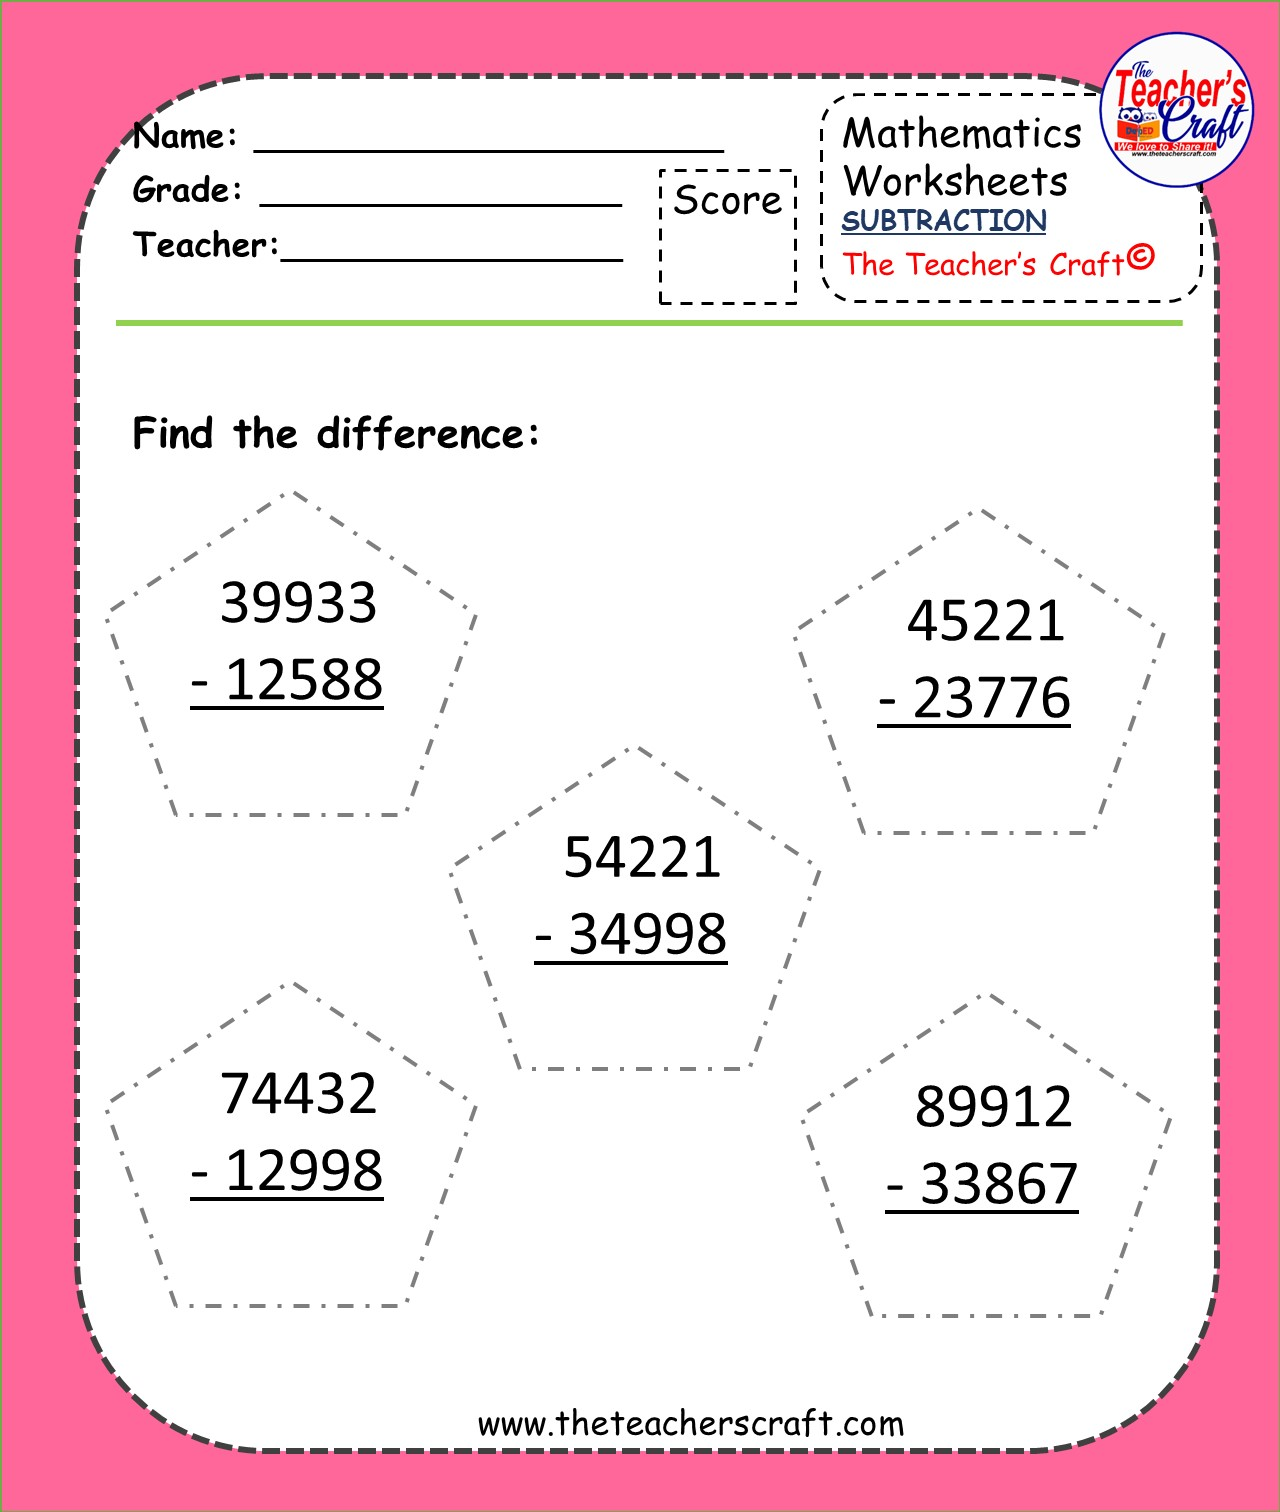 Subtraction Activity Worksheets For Intermediate